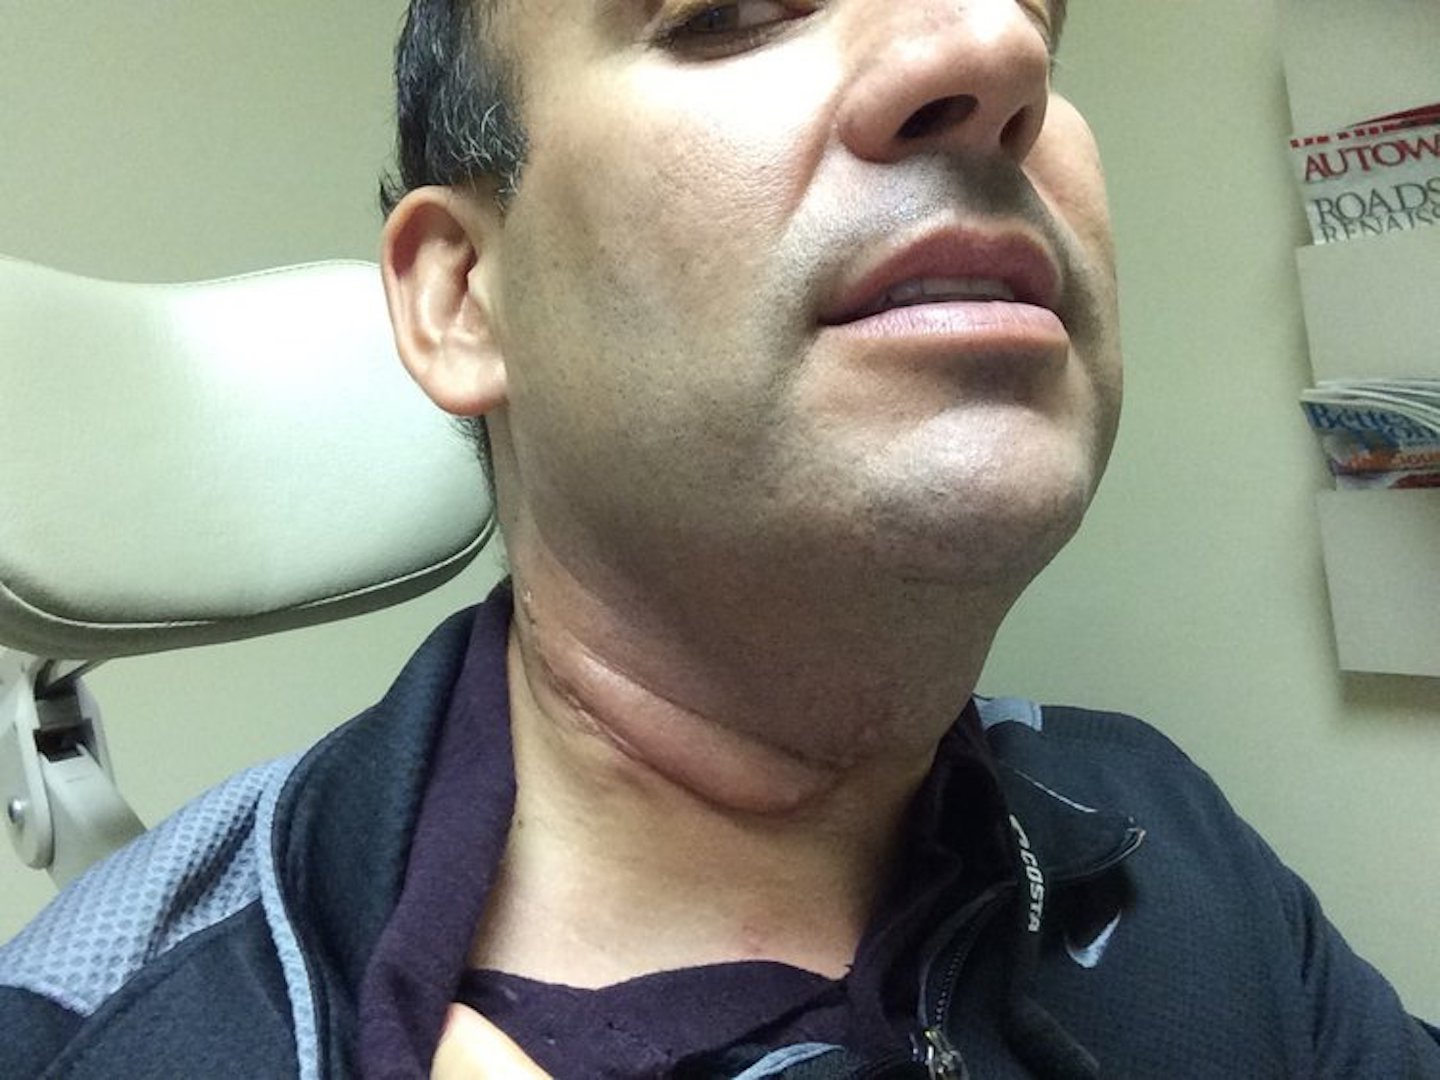 throat cancer caused by hpv virus que es el cancer de mama